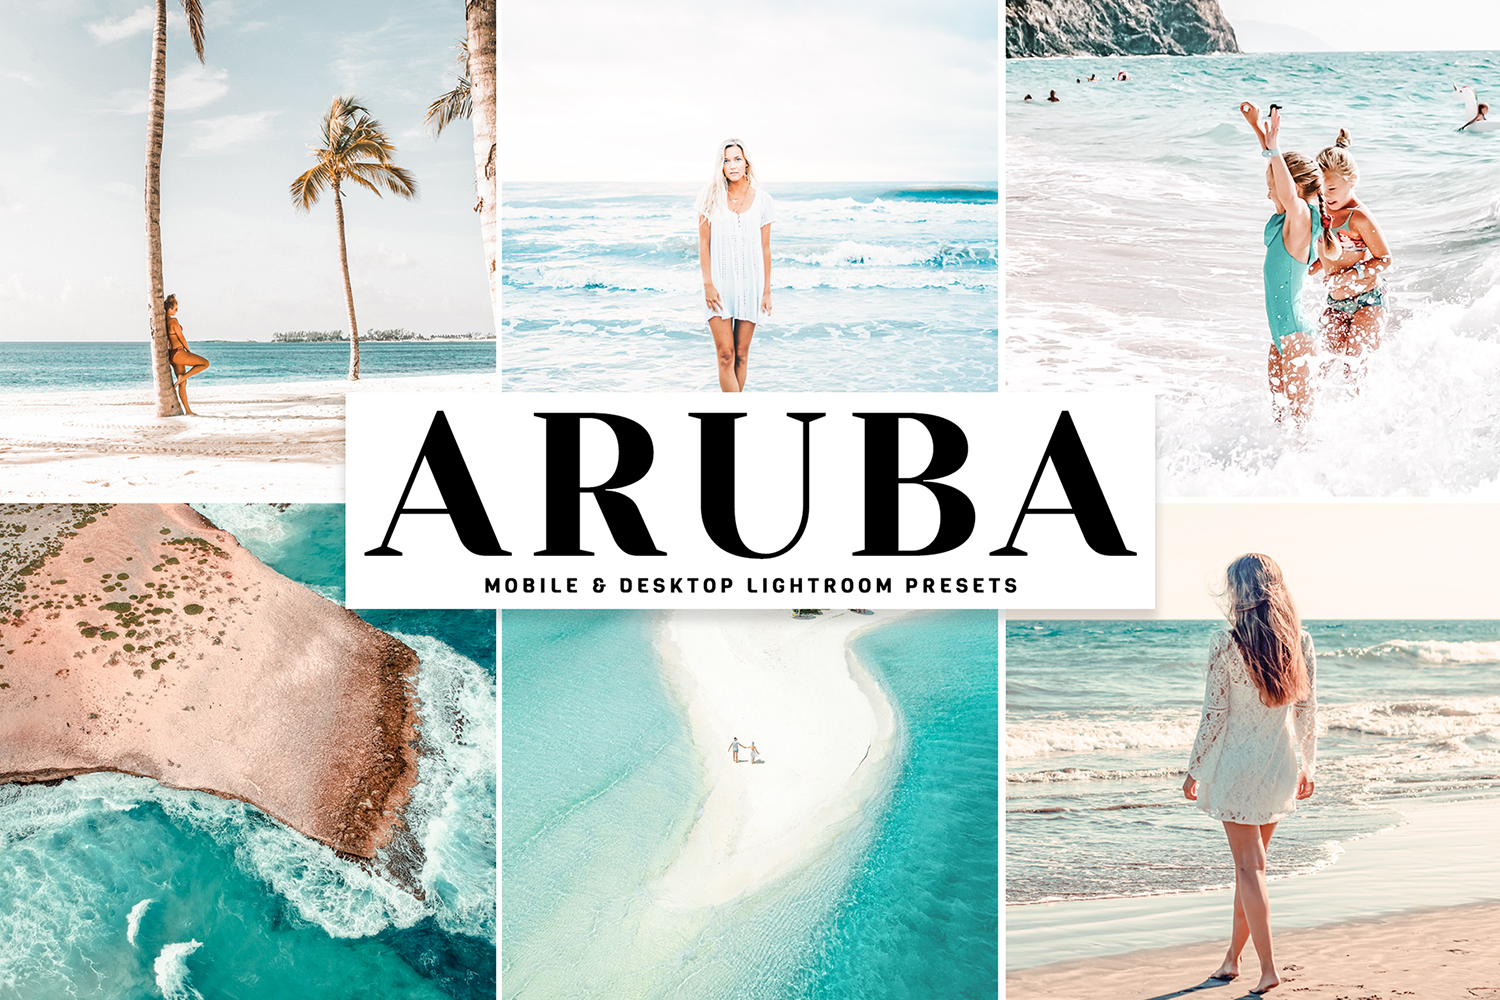 Aruba Mobile & Desktop Lightroom Presets example image 1